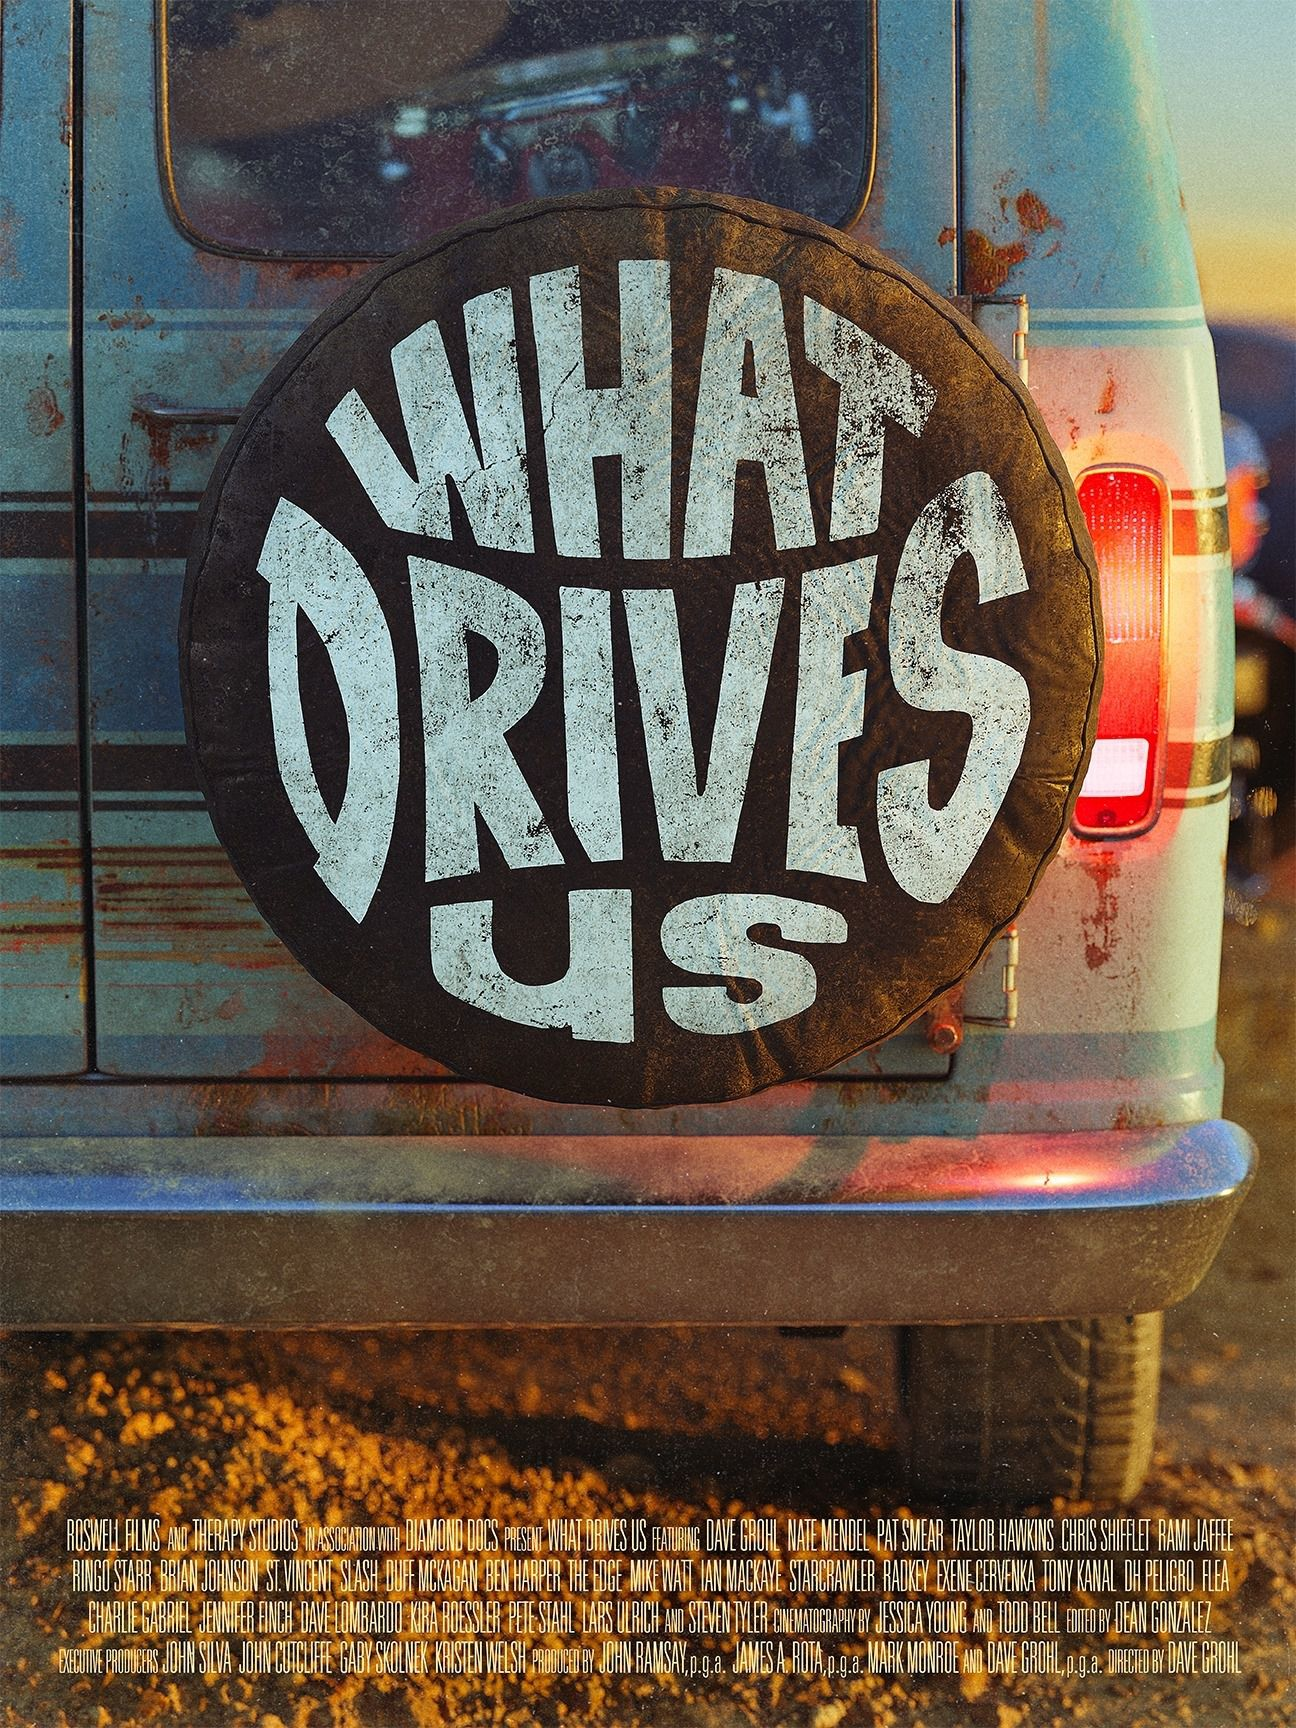 WHAT DRIVES US - Documentaire (2021) streaming VF gratuit complet